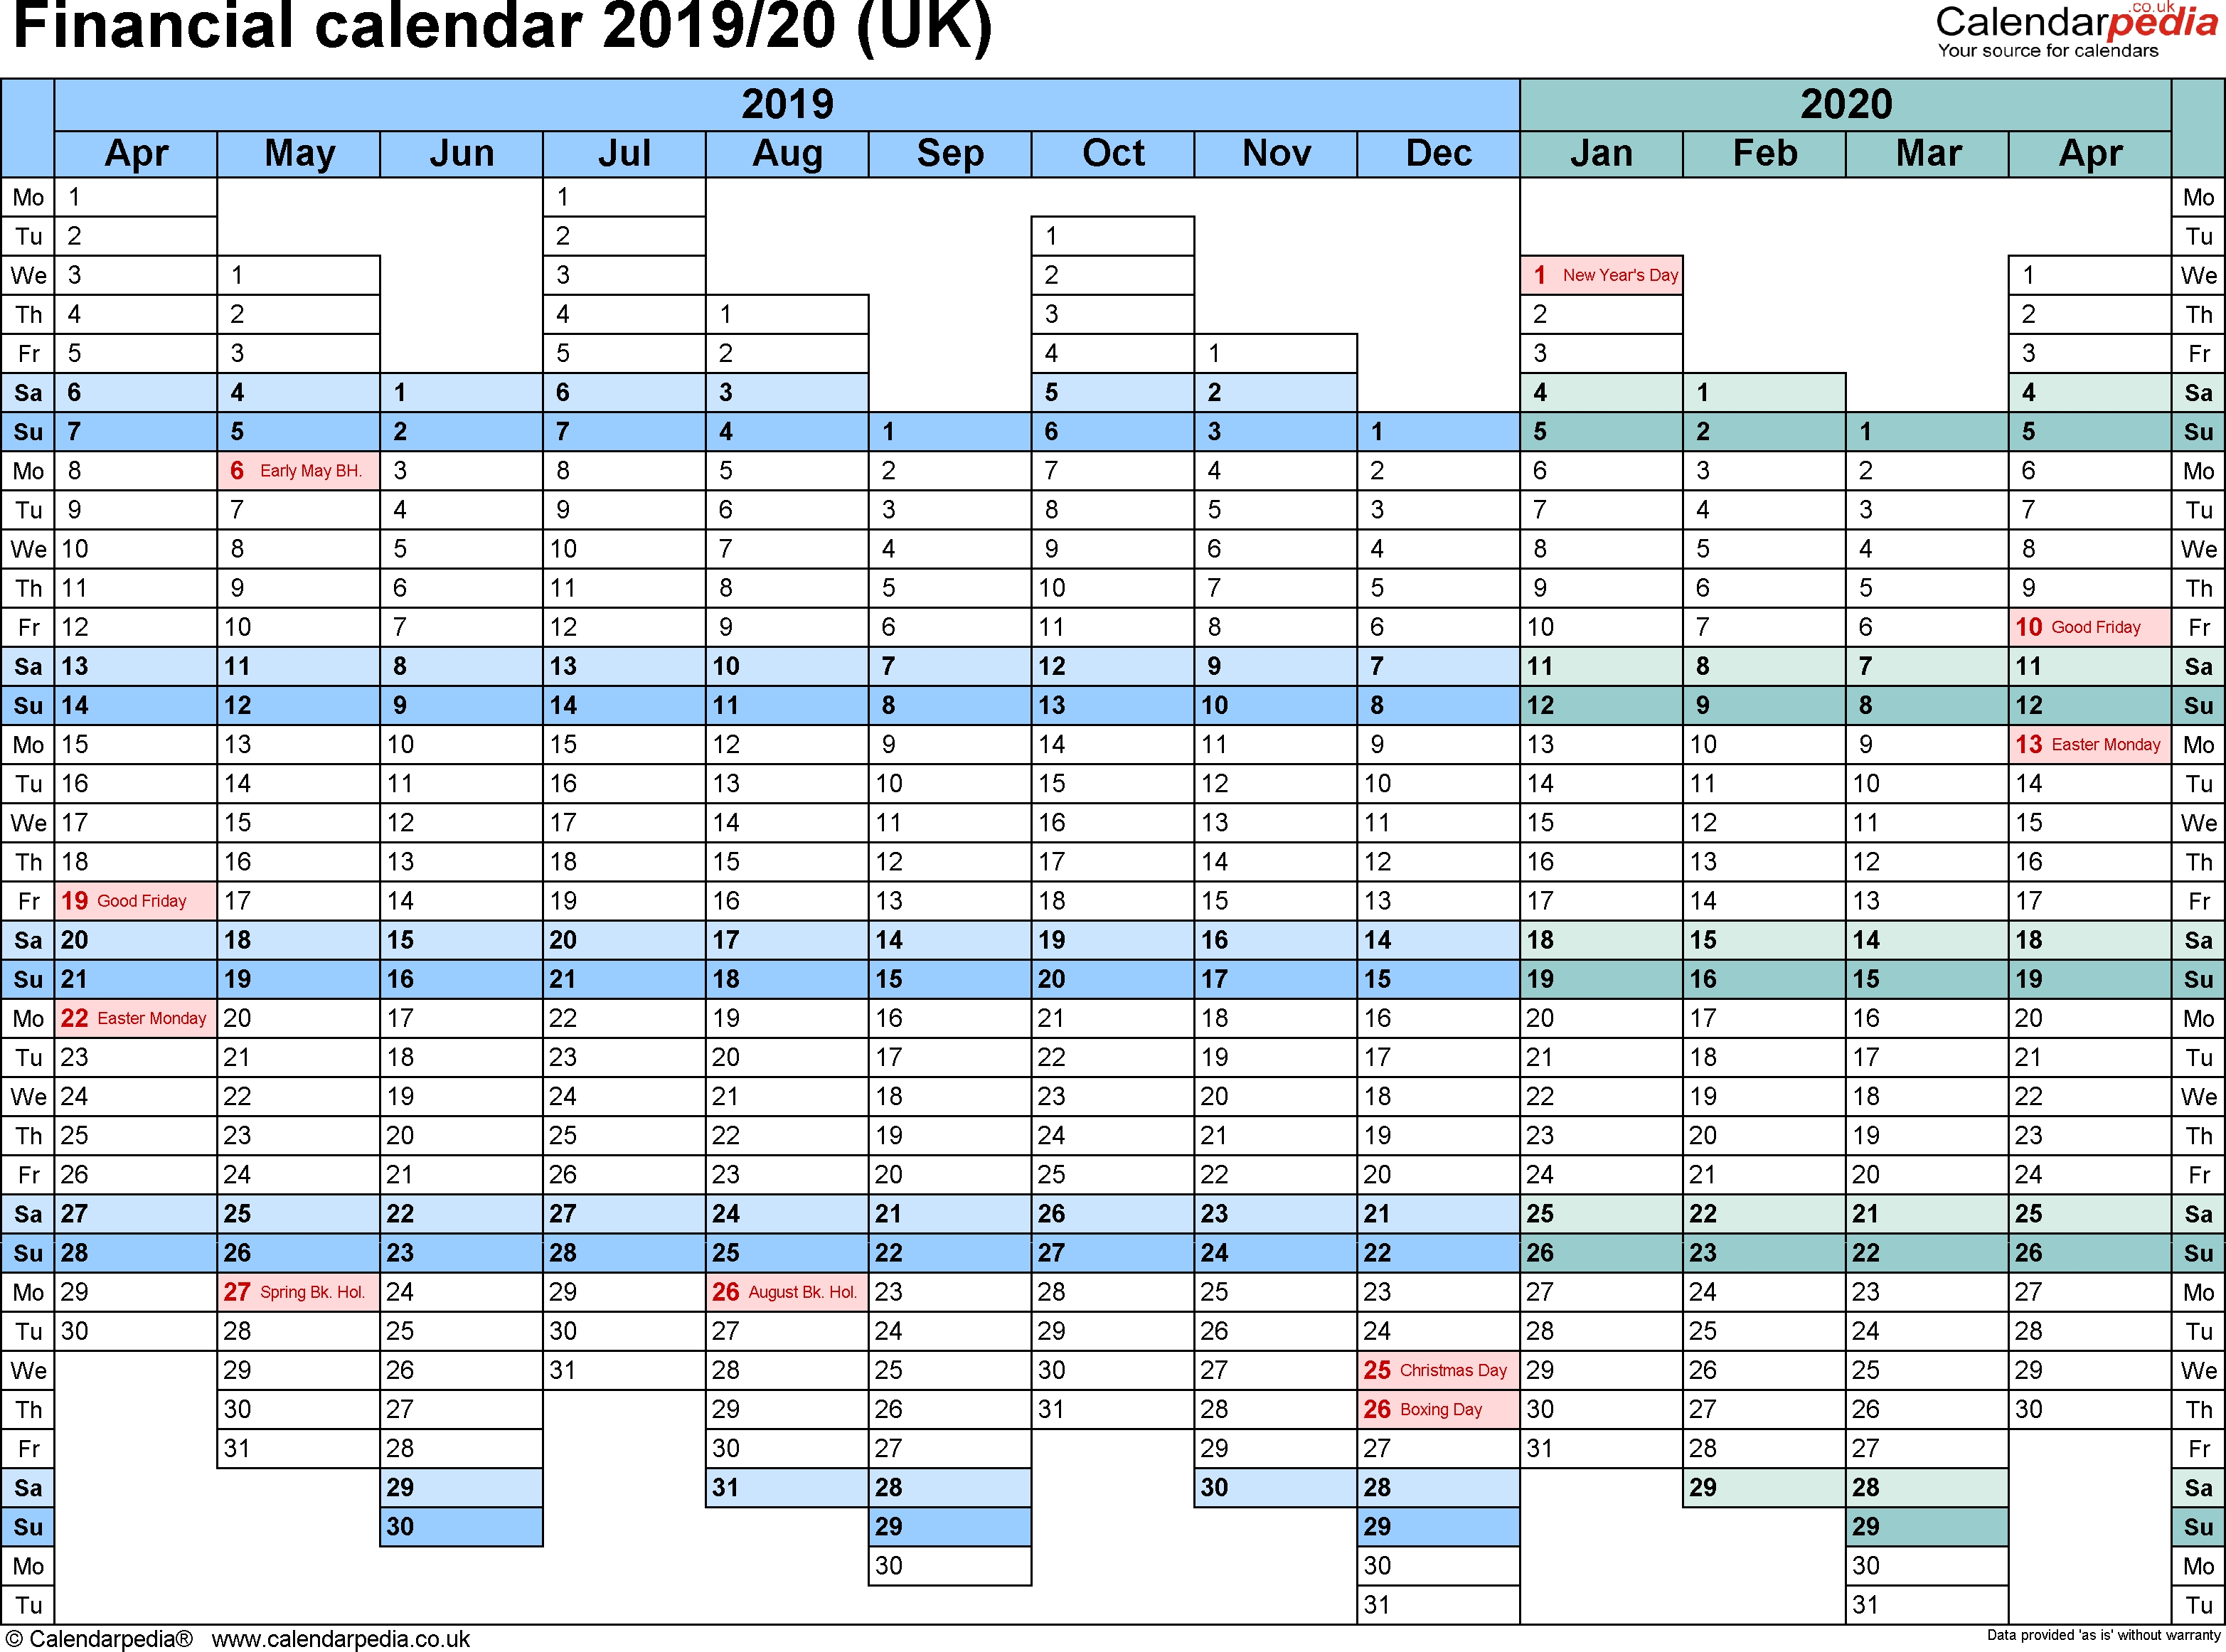 Financial Calendars 2019/20 (Uk) In Pdf Format within Tax Calender 2019/2020